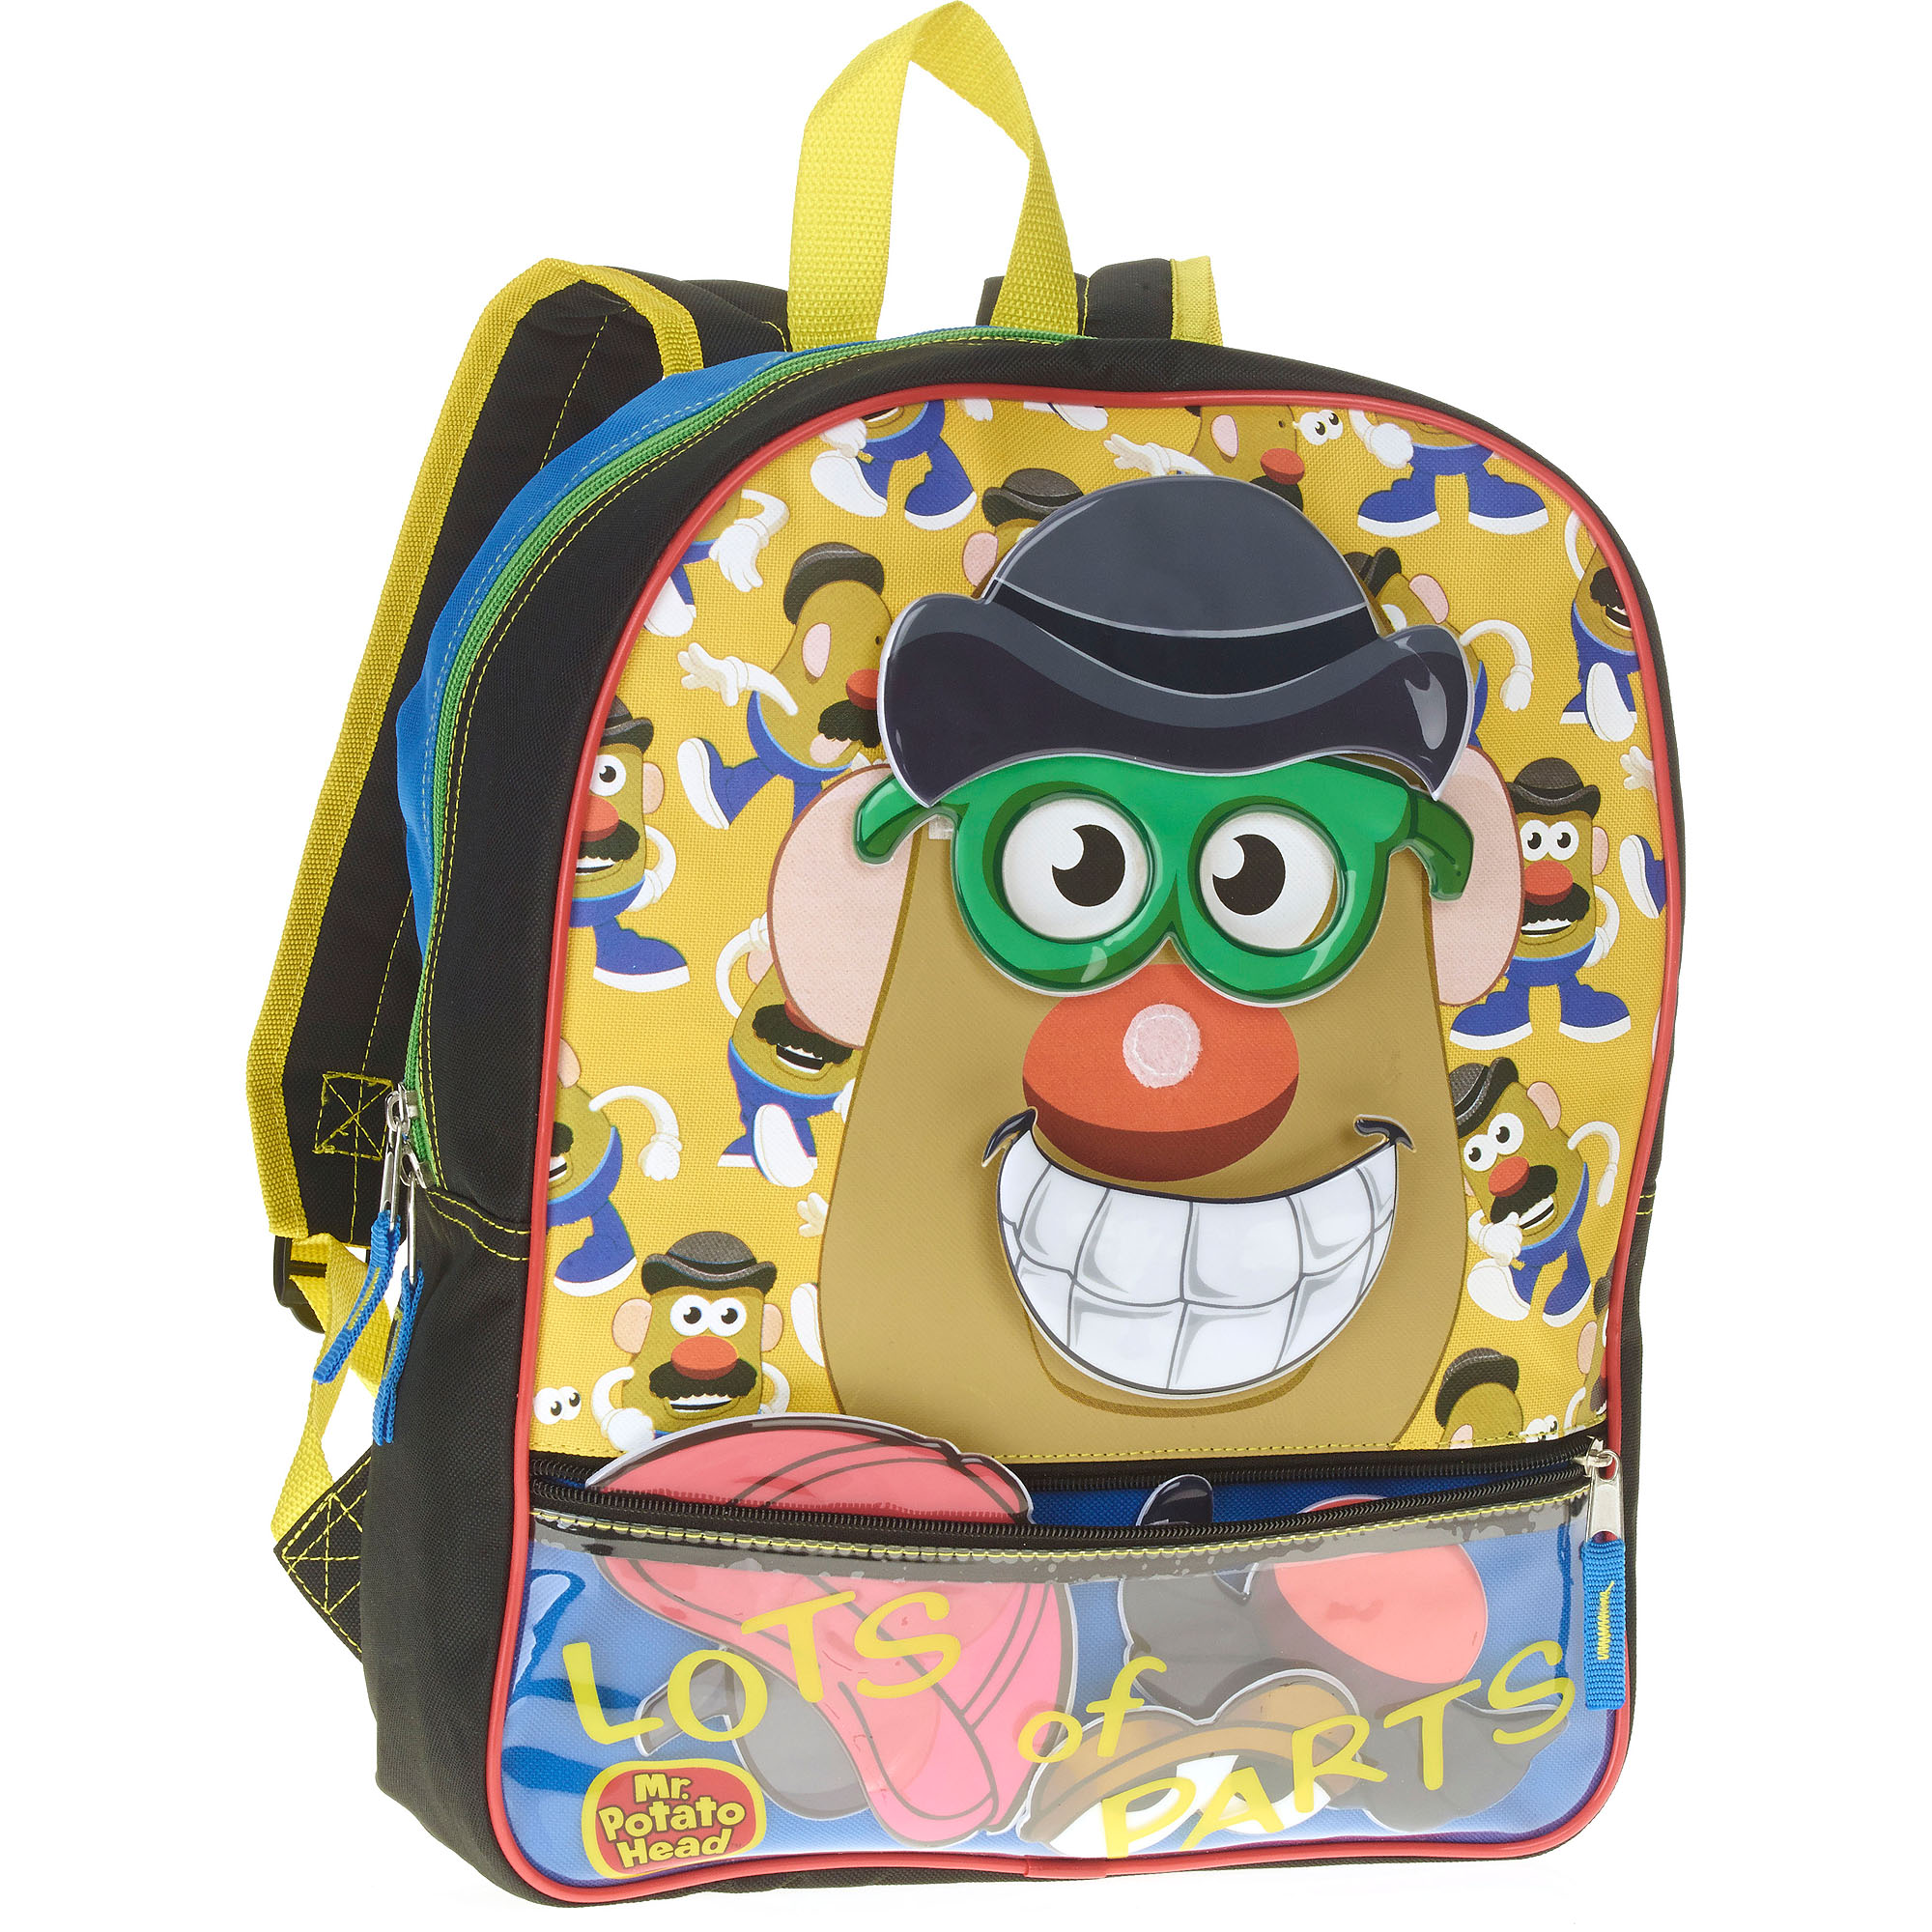 "Mr. Potato Head 16"" Backpack with removable parts"